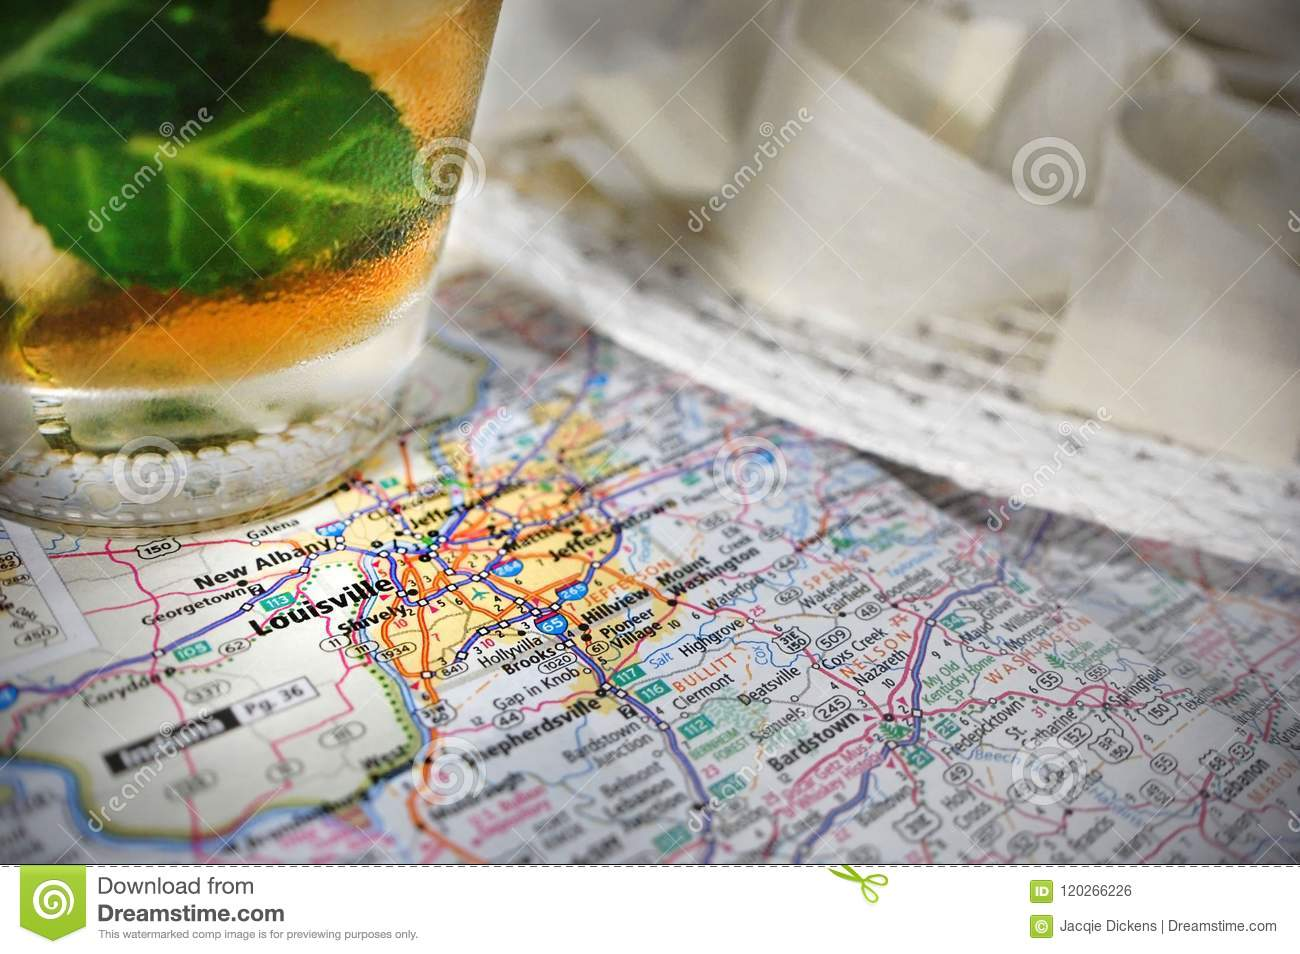 Kentucky Derby stock photo. Image of geography, background - 120266226